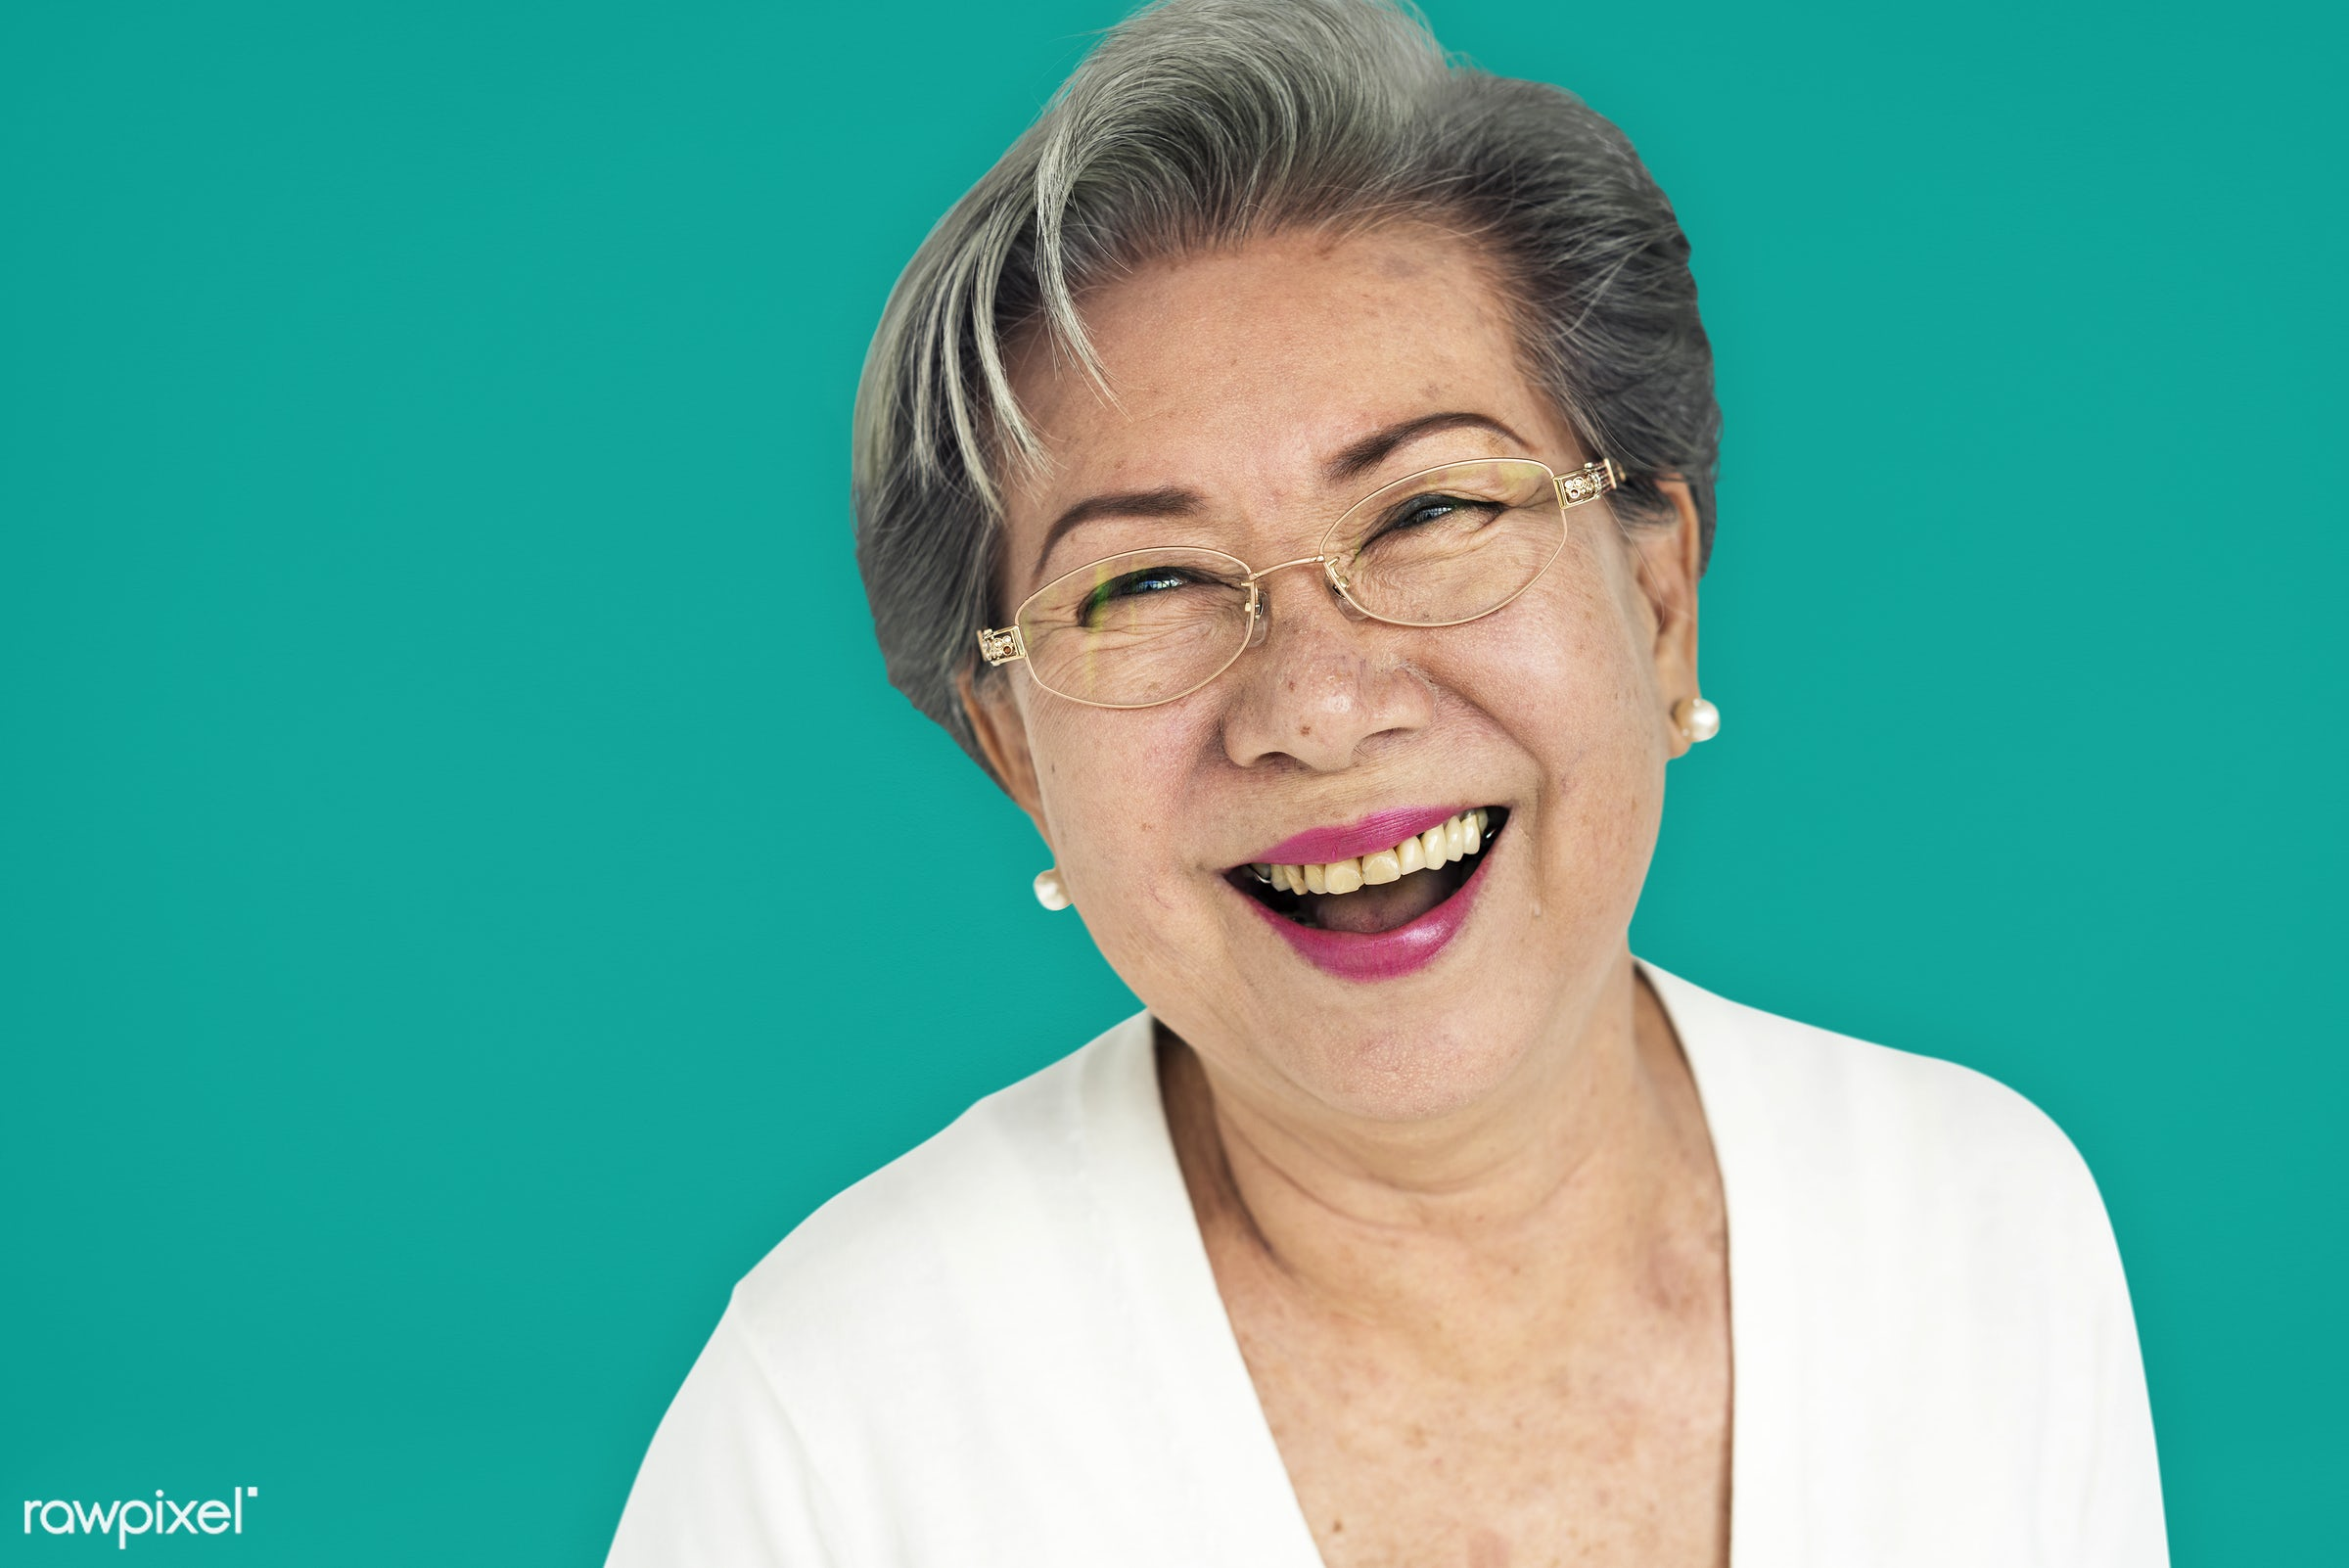 studio, expression, person, people, asian, woman, cheerful, smiling, isolated, happiness, portrait, emotion, confident,...